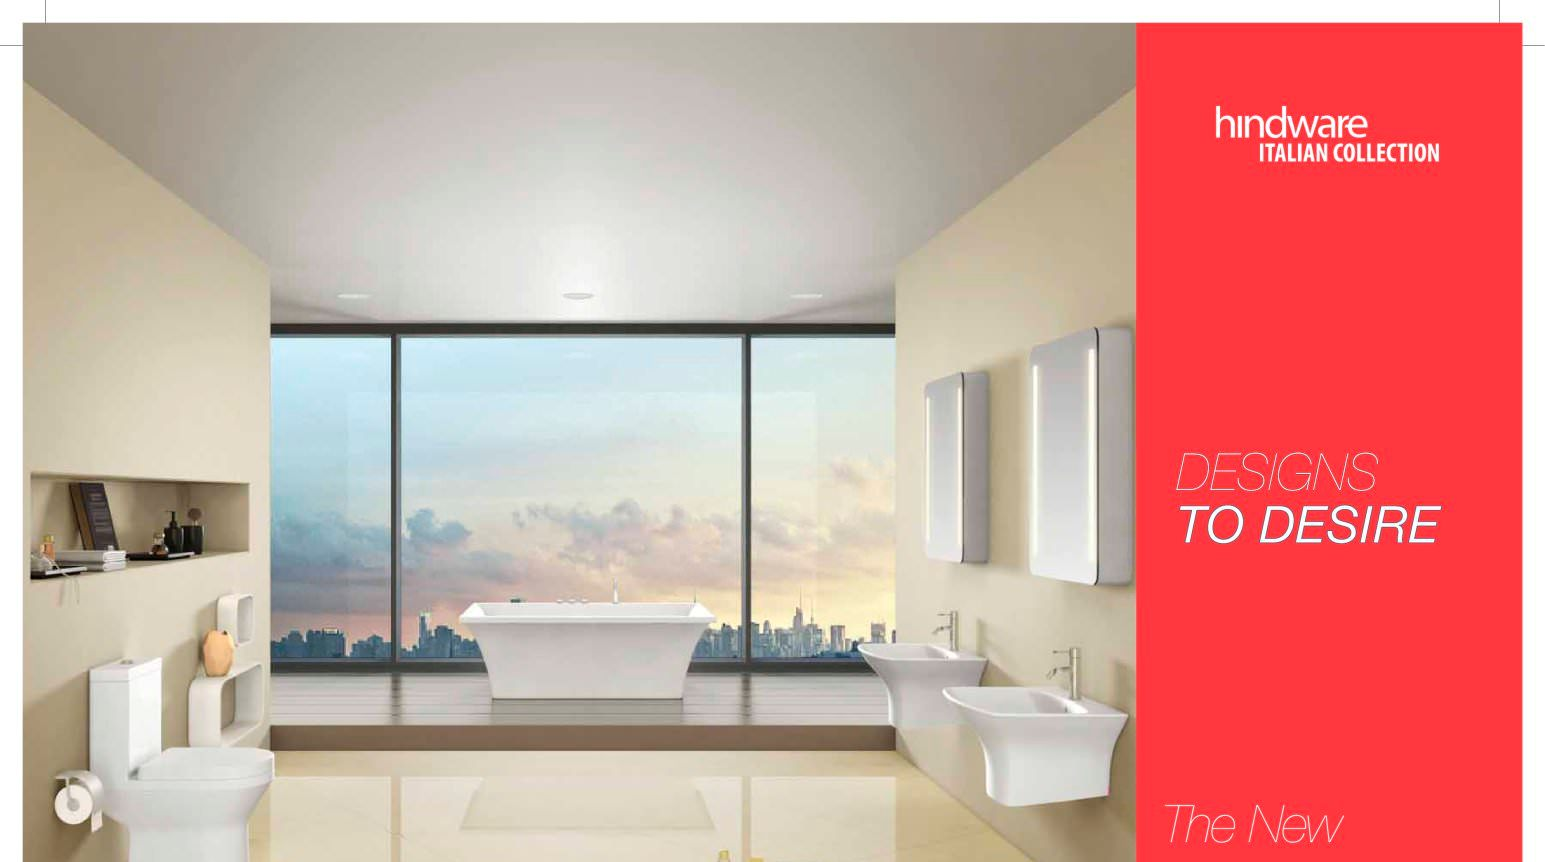 Exclusive Hindware Italian collection sanitaryware available at Chhabria & Sons Bangalore, only on SJP road.  http://chabsons.net/html/product_list/index/98/Sanitaryware-And-Faucets-Hindware/nav-18-Sanitaryware-And-Faucets/nav-18-Sanitaryware-And-Faucets-Hindware